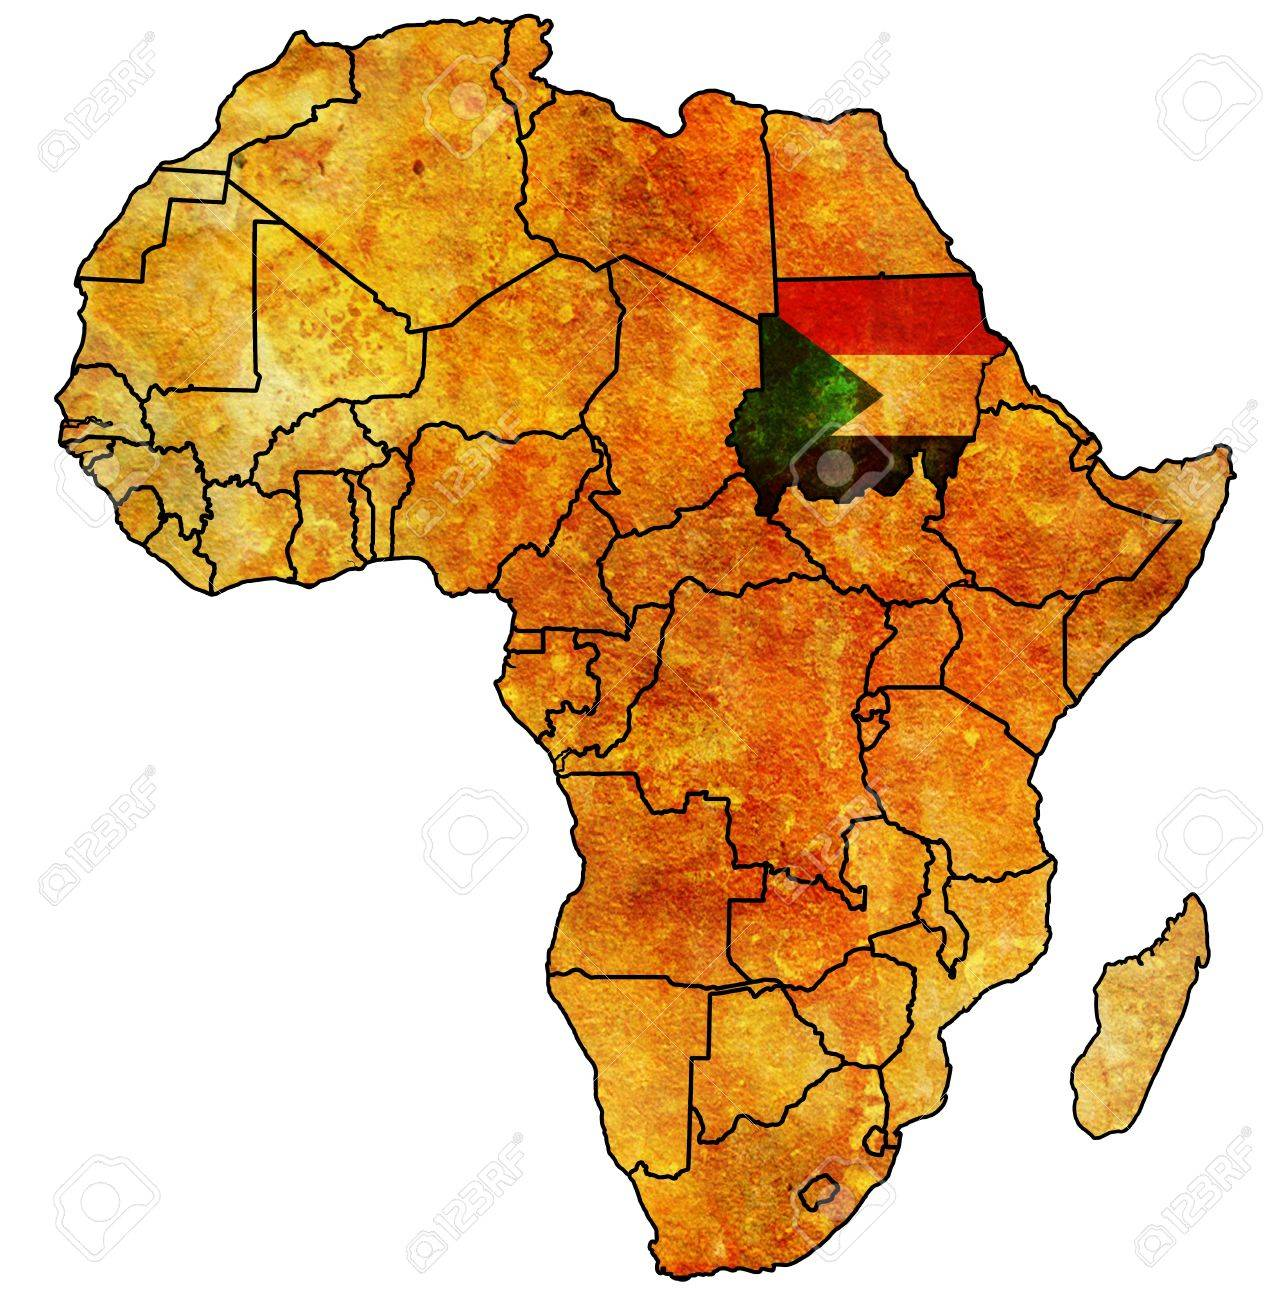 Sudan On Actual Vintage Political Map Of Africa With Flags Stock ...